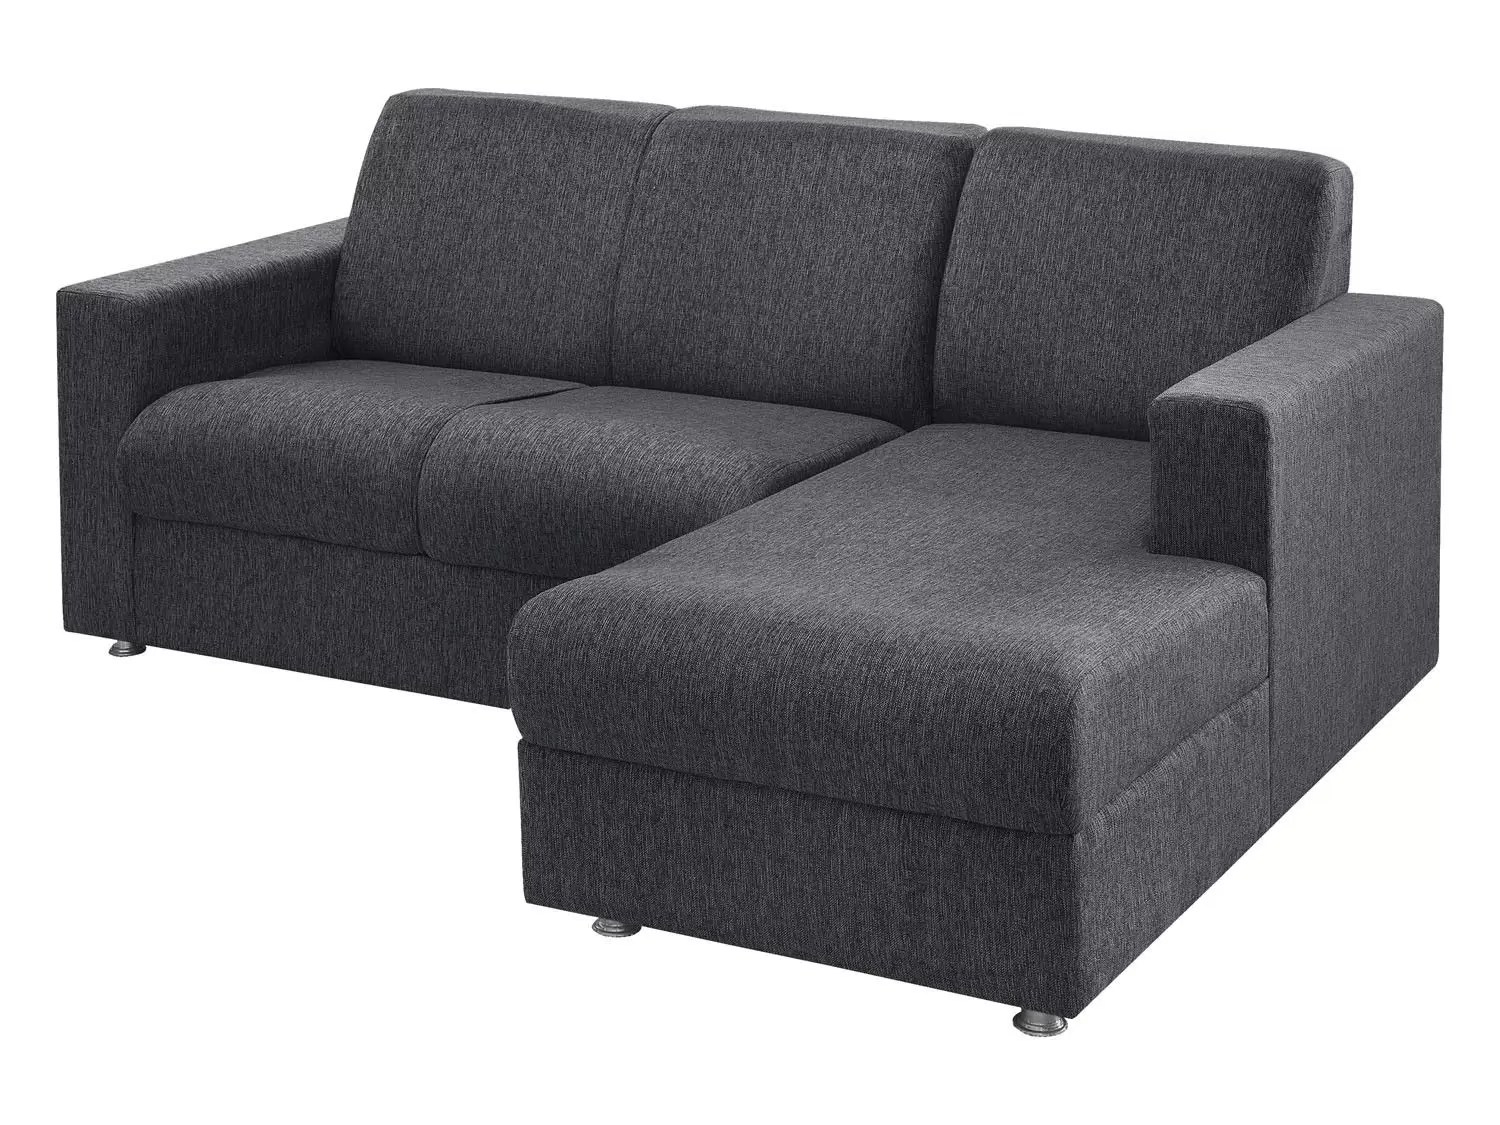 chenille sectional sofas with chaise berkline leather reclining sofa sofá 2 lugares roma american comfort